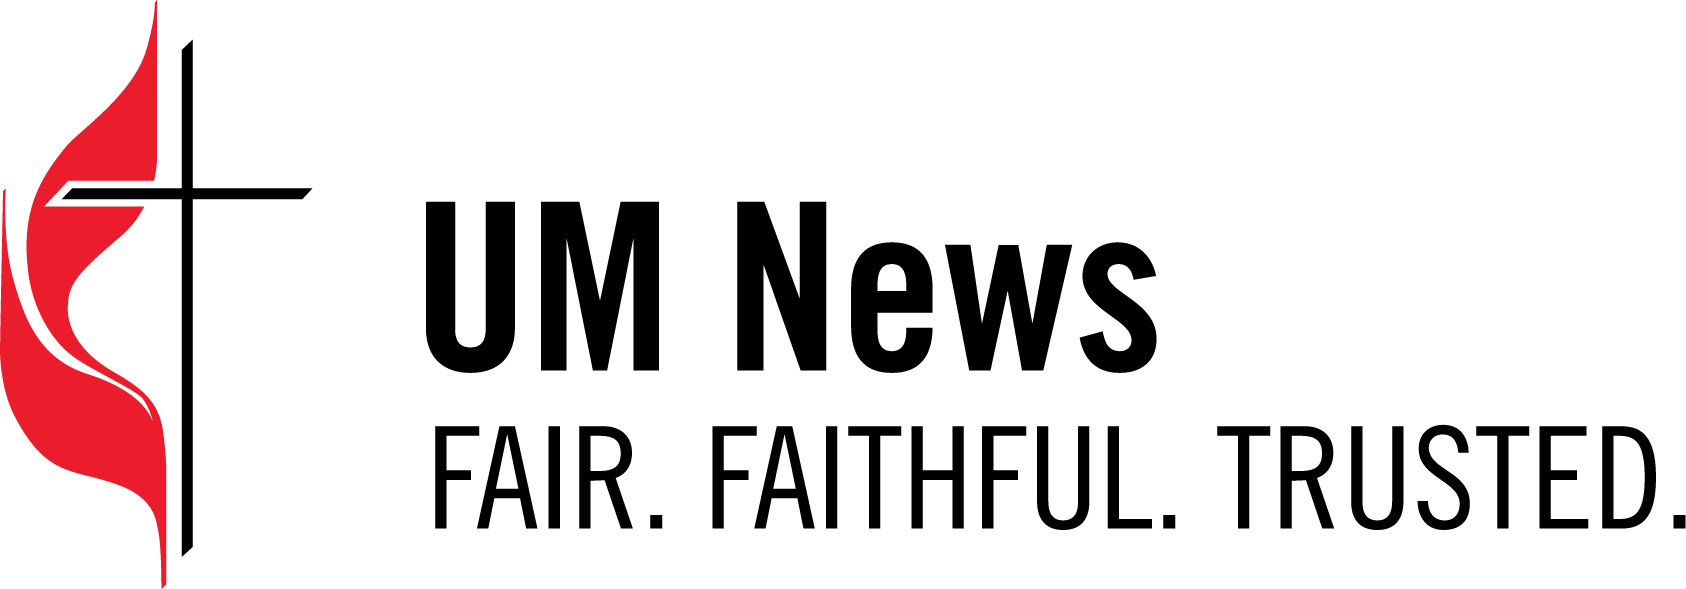 United Methodist News - Fair. Faithful. Trusted.